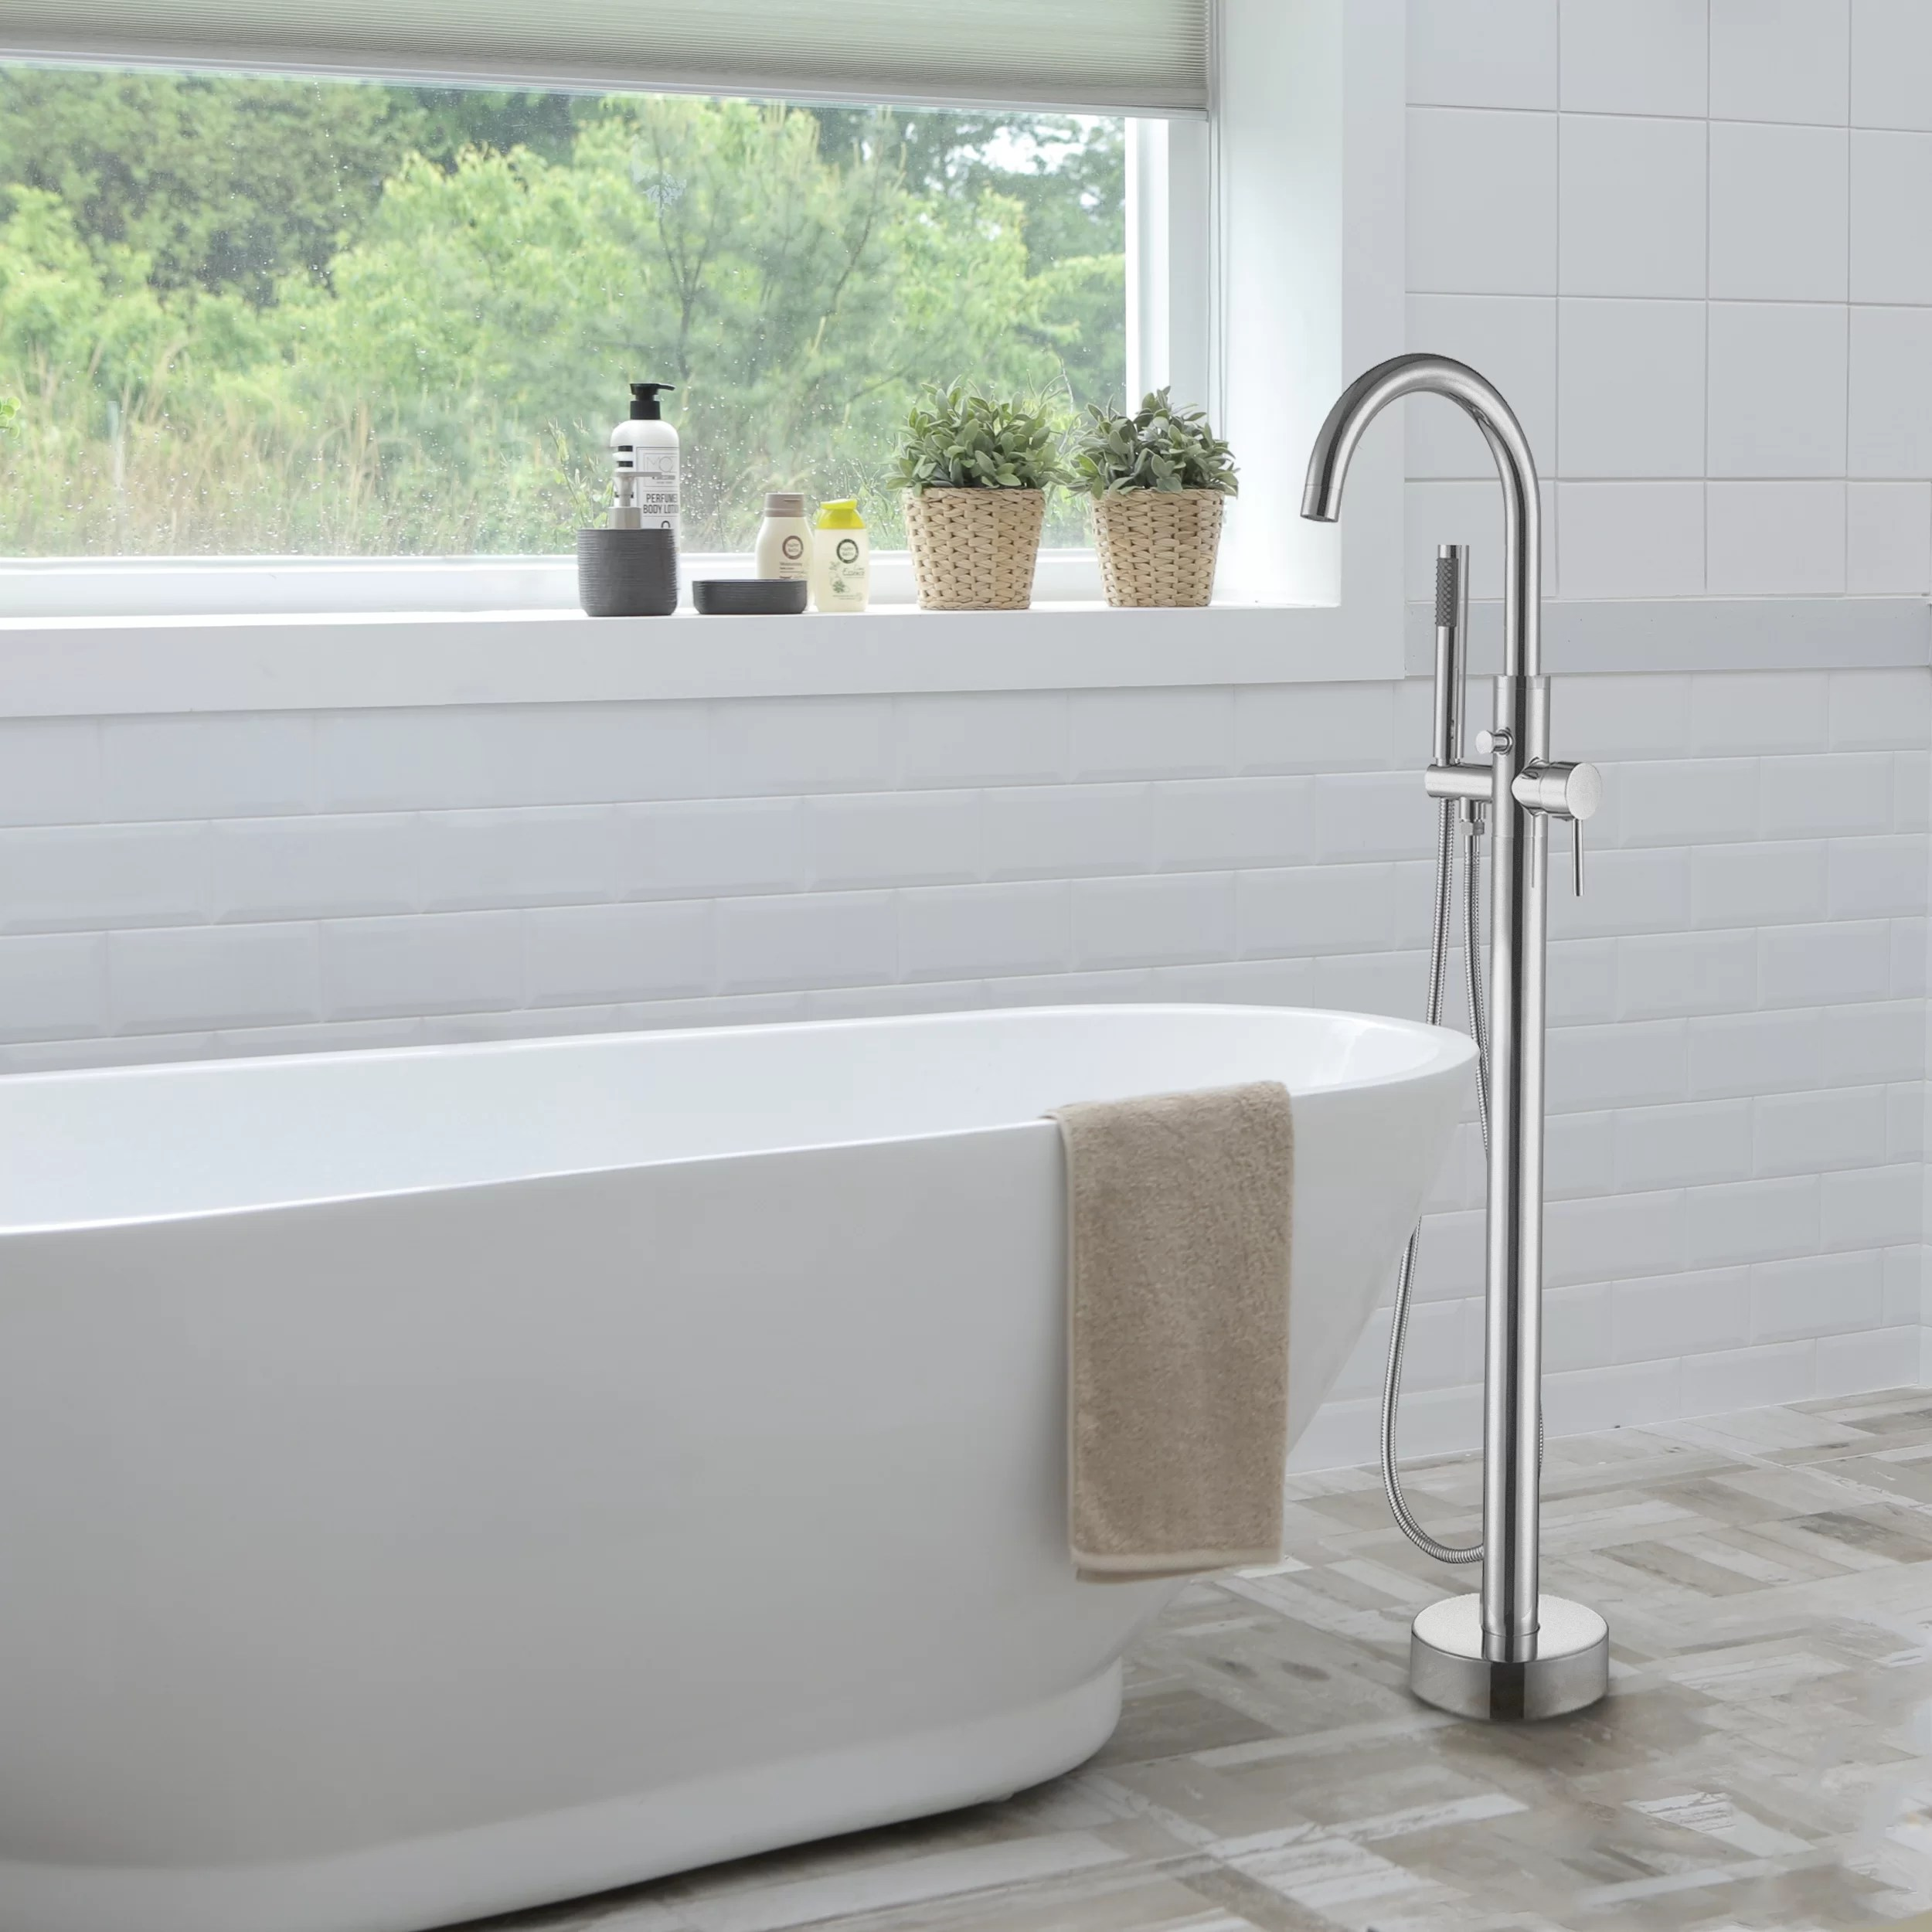 double handle floor mounted free standing tub filler with hand shower